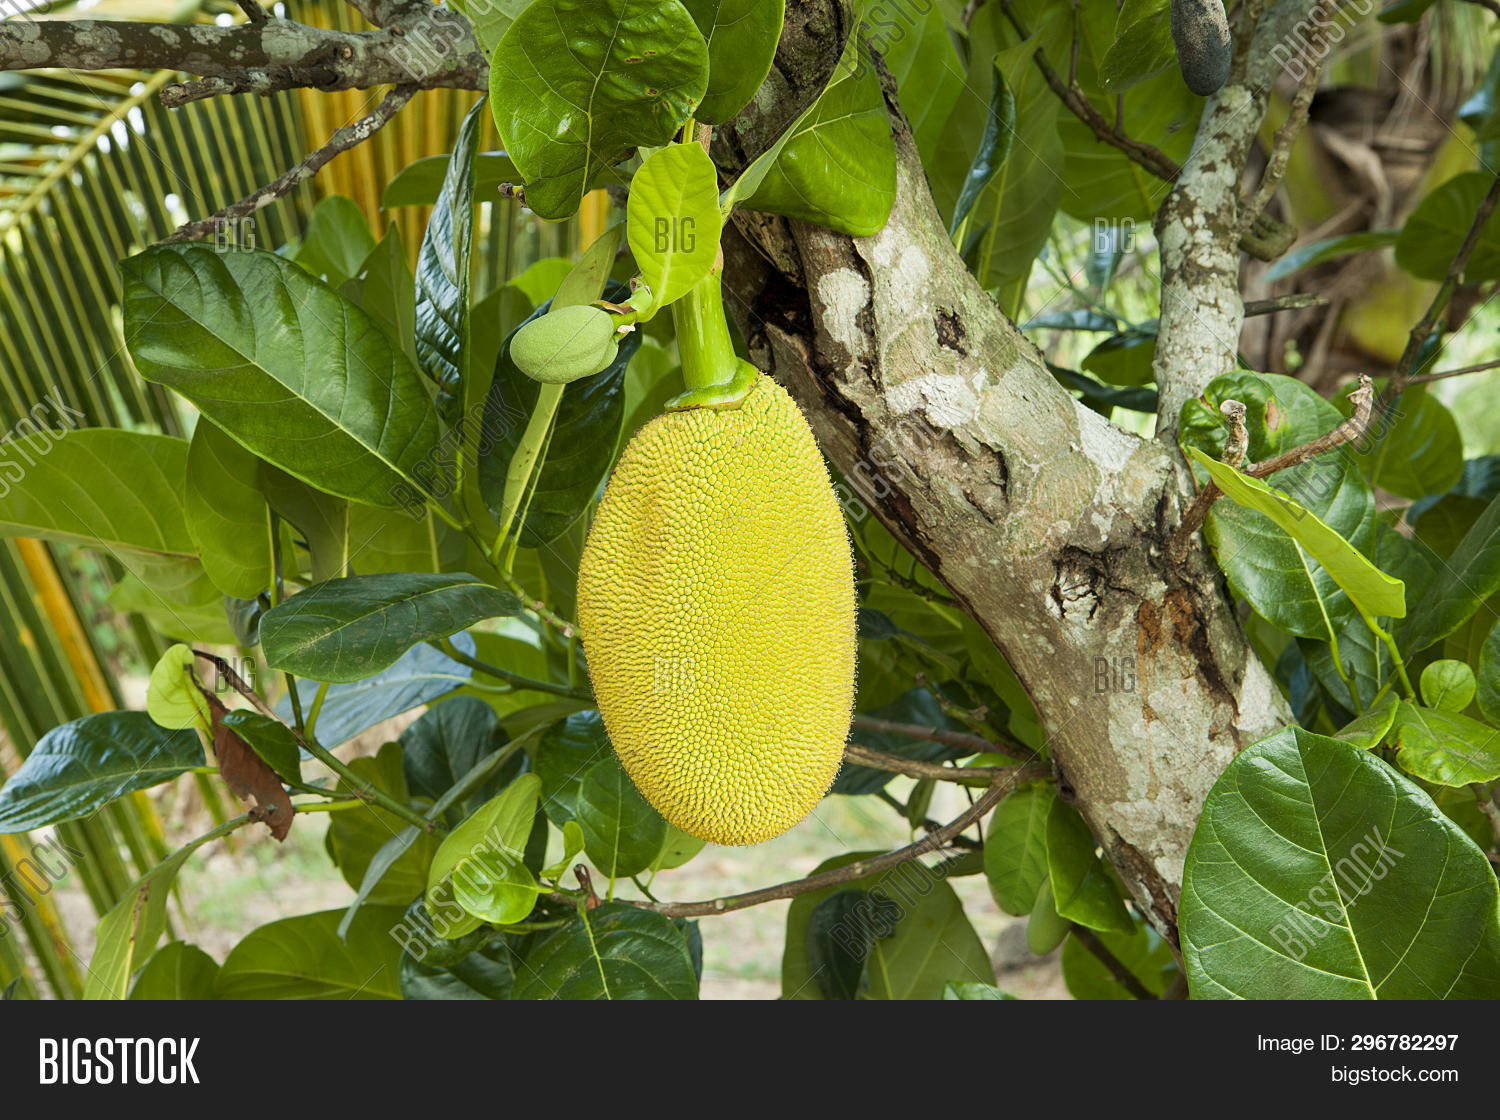 Pictures Of Ripe Jackfruit